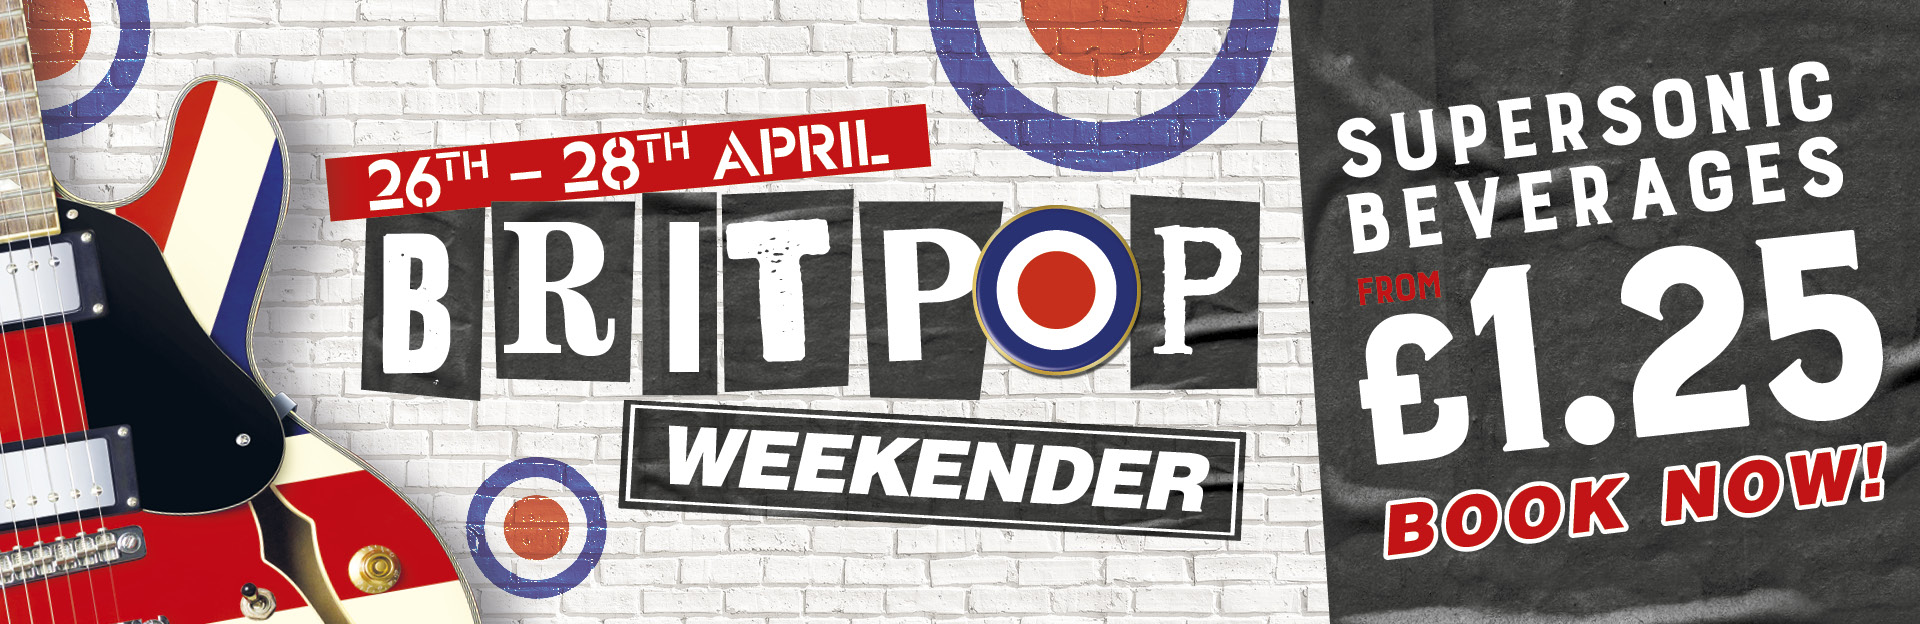 Britpop Weekender at The Original Oak